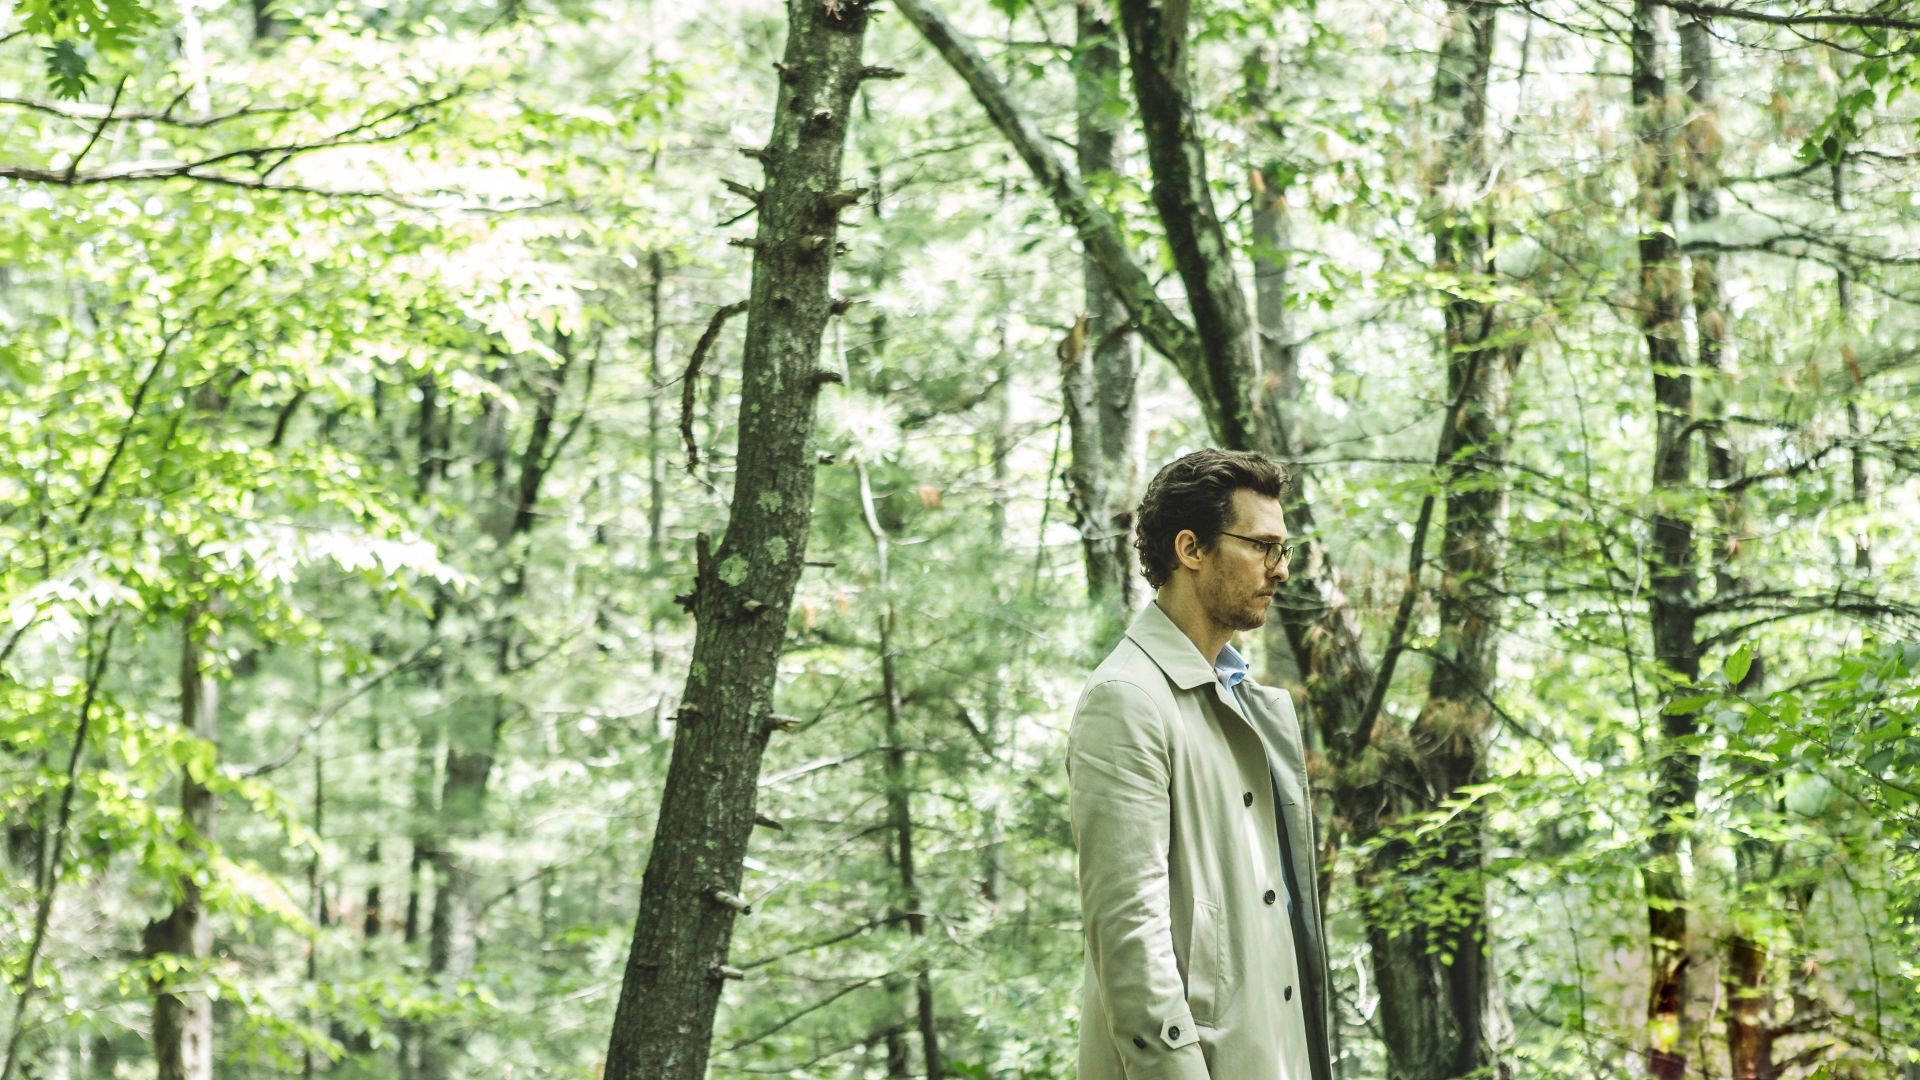 MOVIE REVIEW: The Sea of Trees — Every Movie Has a Lesson